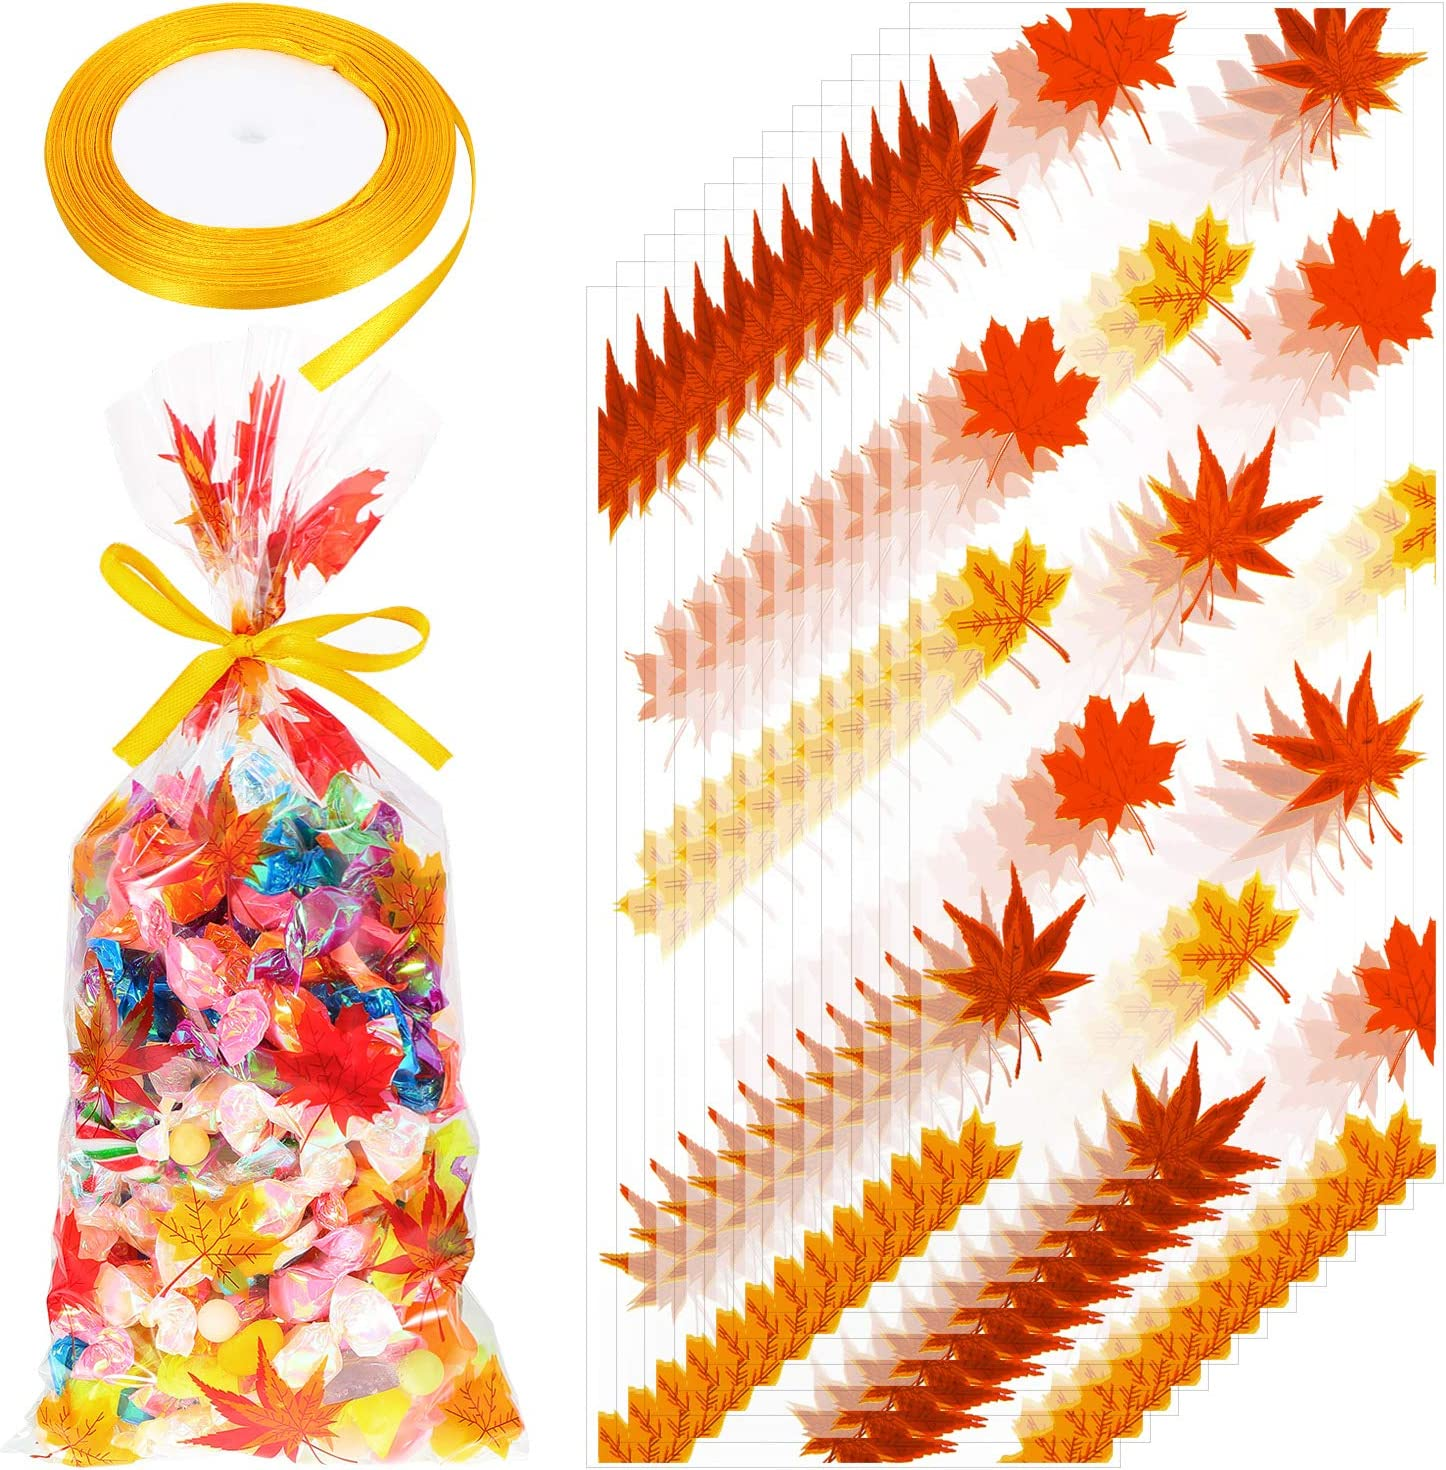 12 PAK Fall Thanksgiving Red Truck Pumpkins Favor Bags  Cookie Candy Party Favor Gift Bags  Utensils Cutlery Holder  2-3 Day Ship